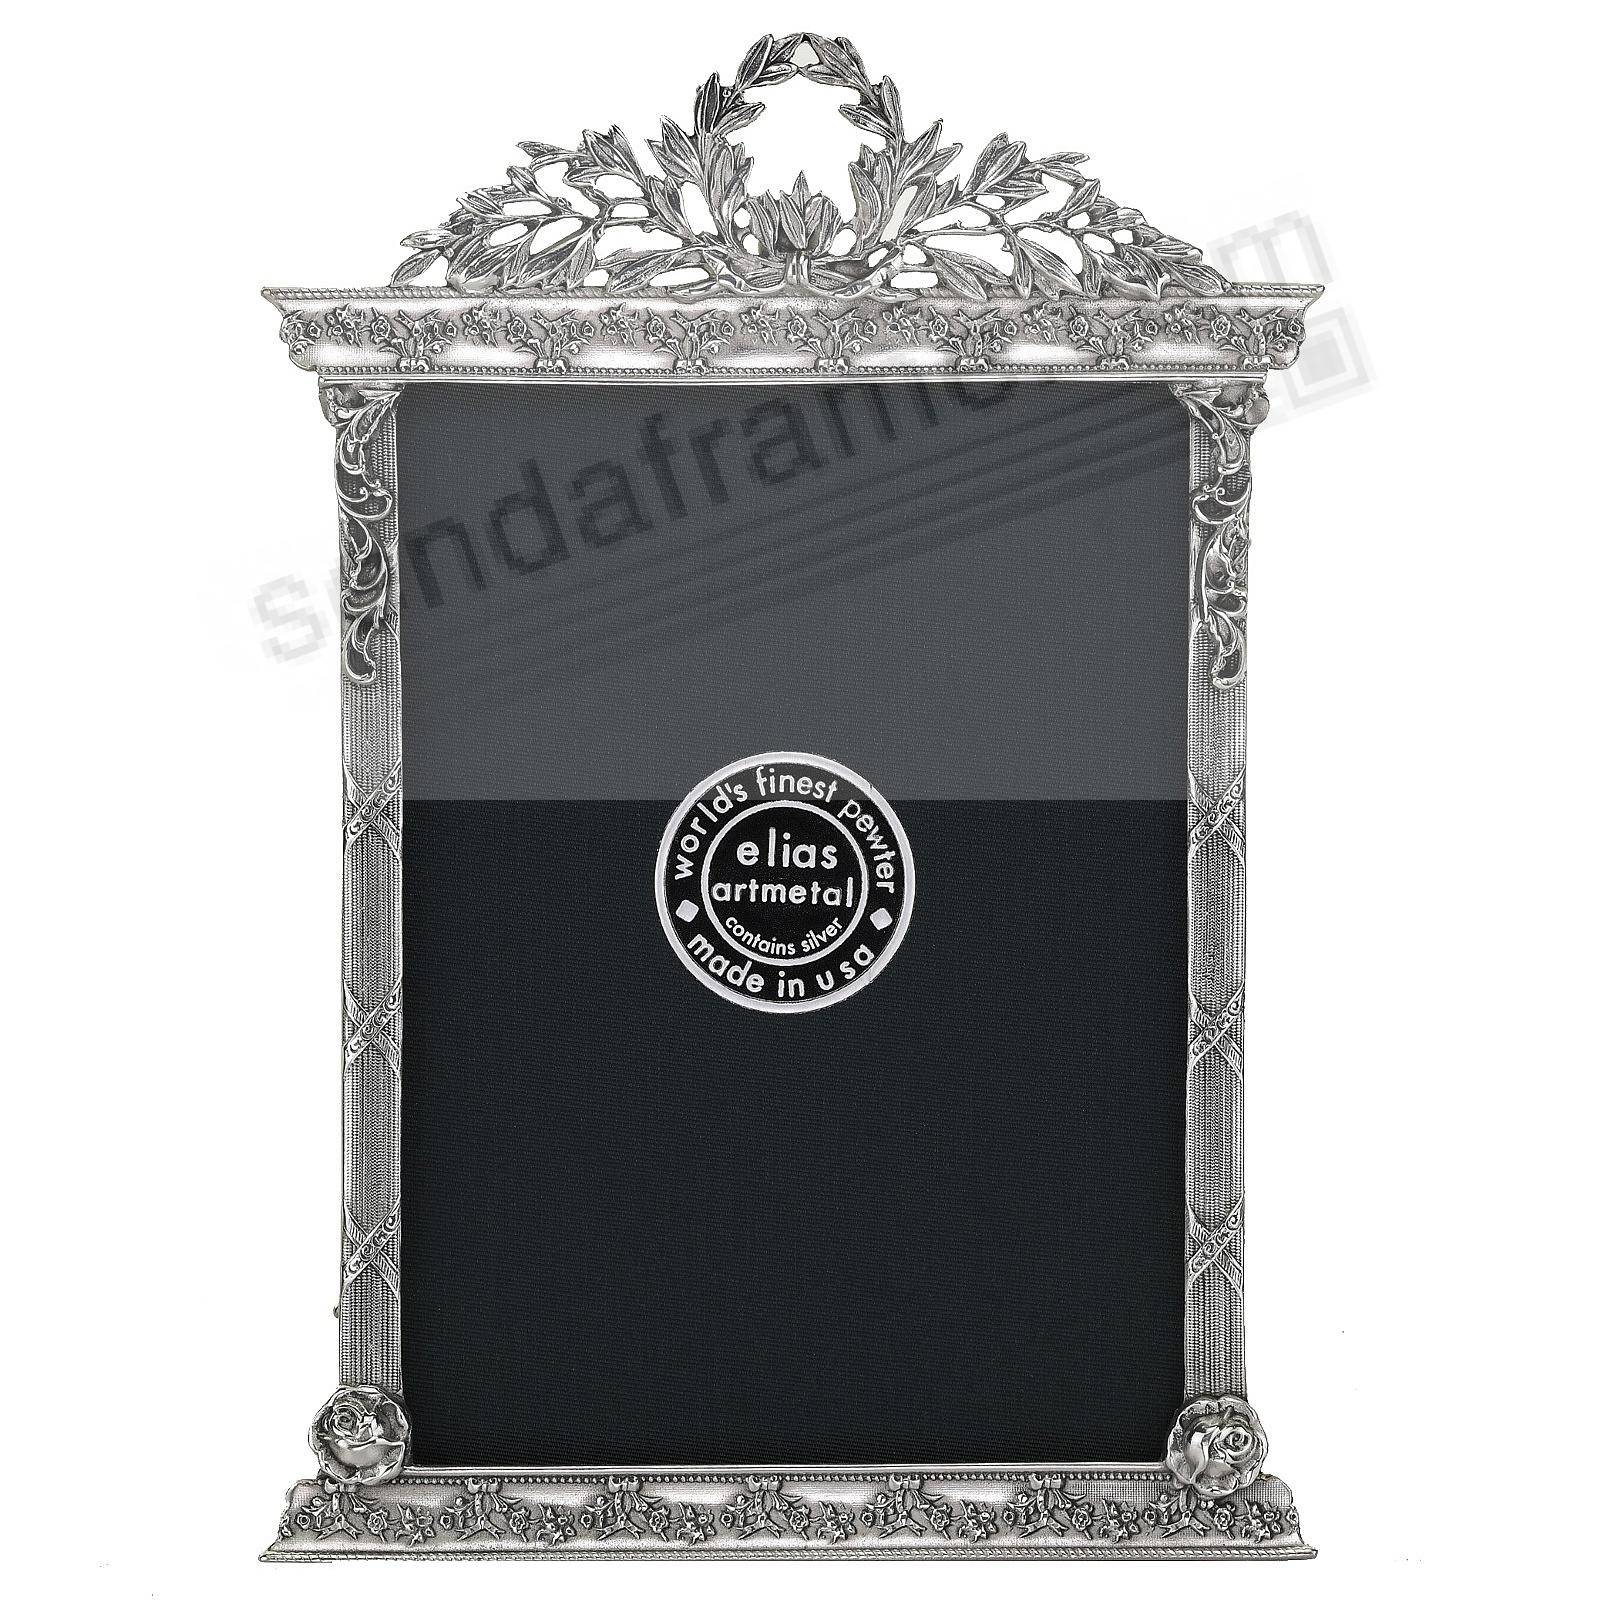 FRENCH TABERNACLE Silvered Fine Pewter by Elias Artmetal®